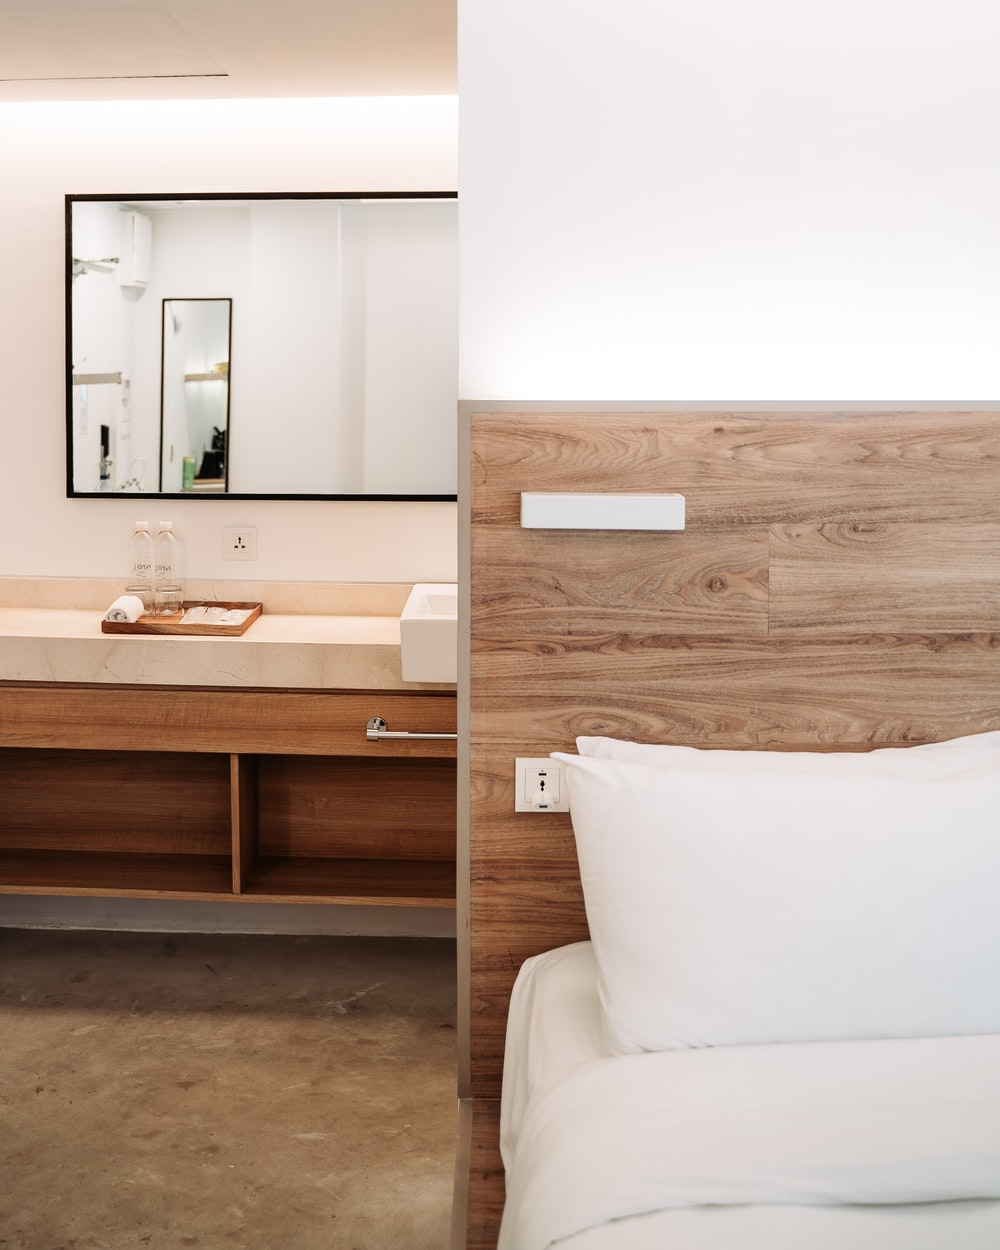 brown wooden headboard and sink collage